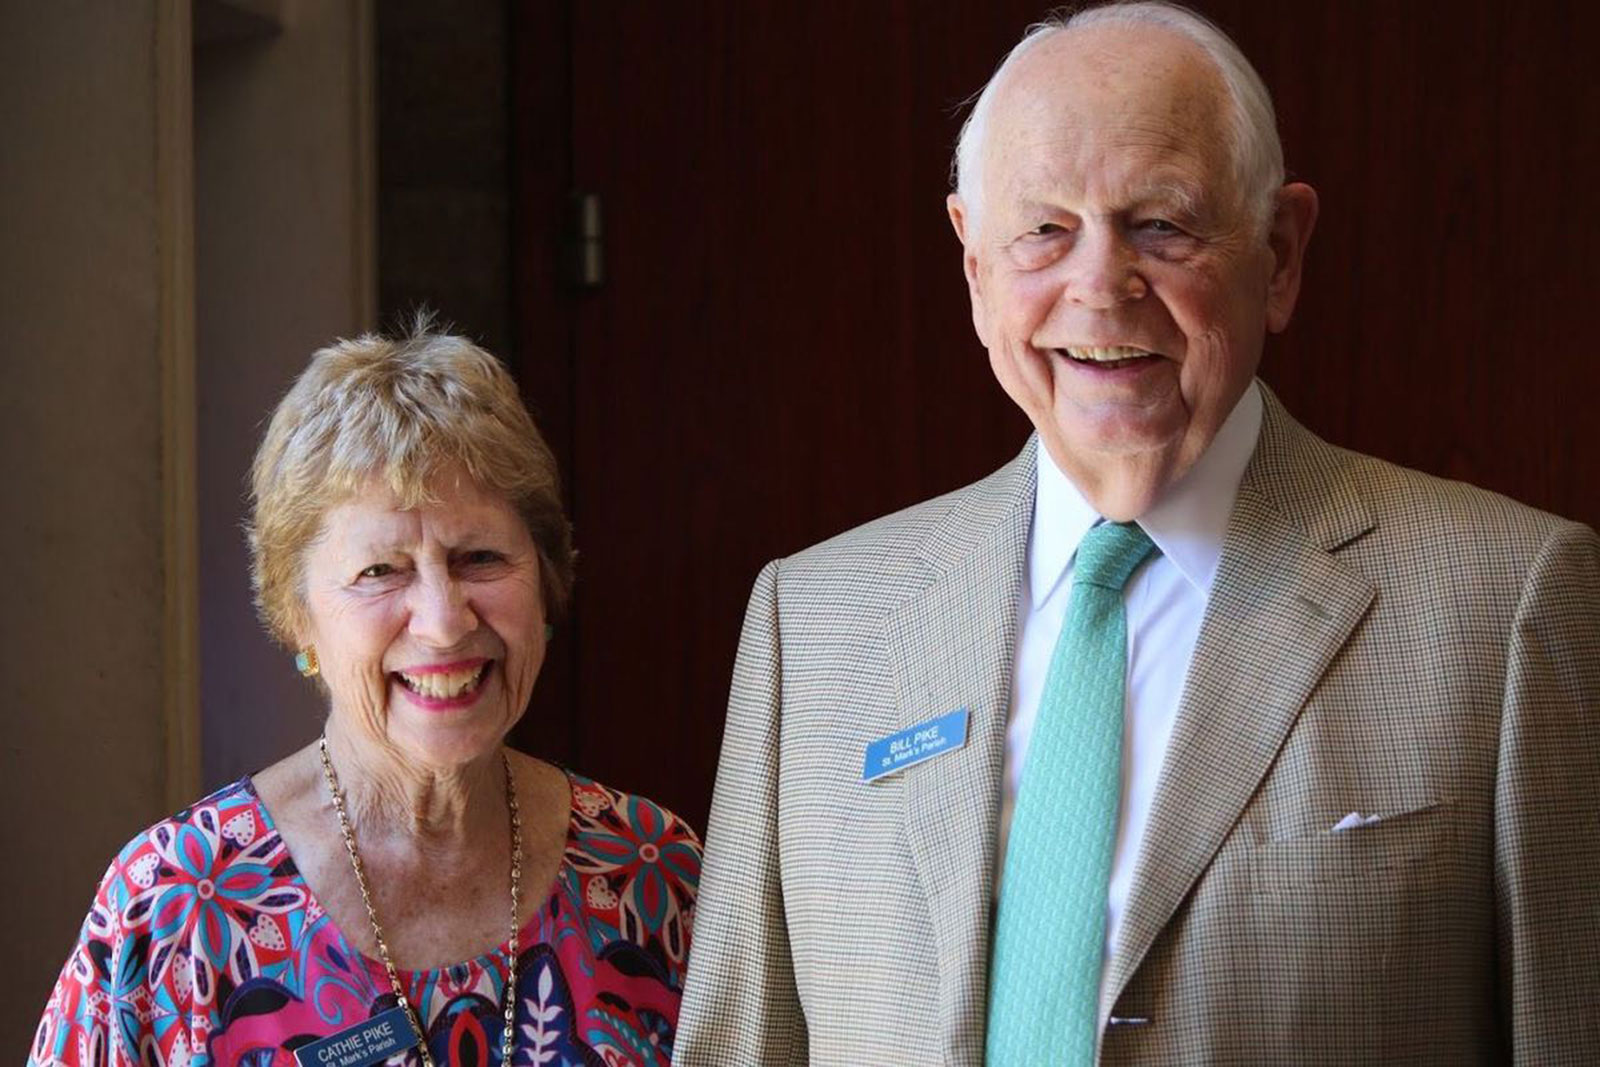 Bill Pike and his wife, Cathie Pike